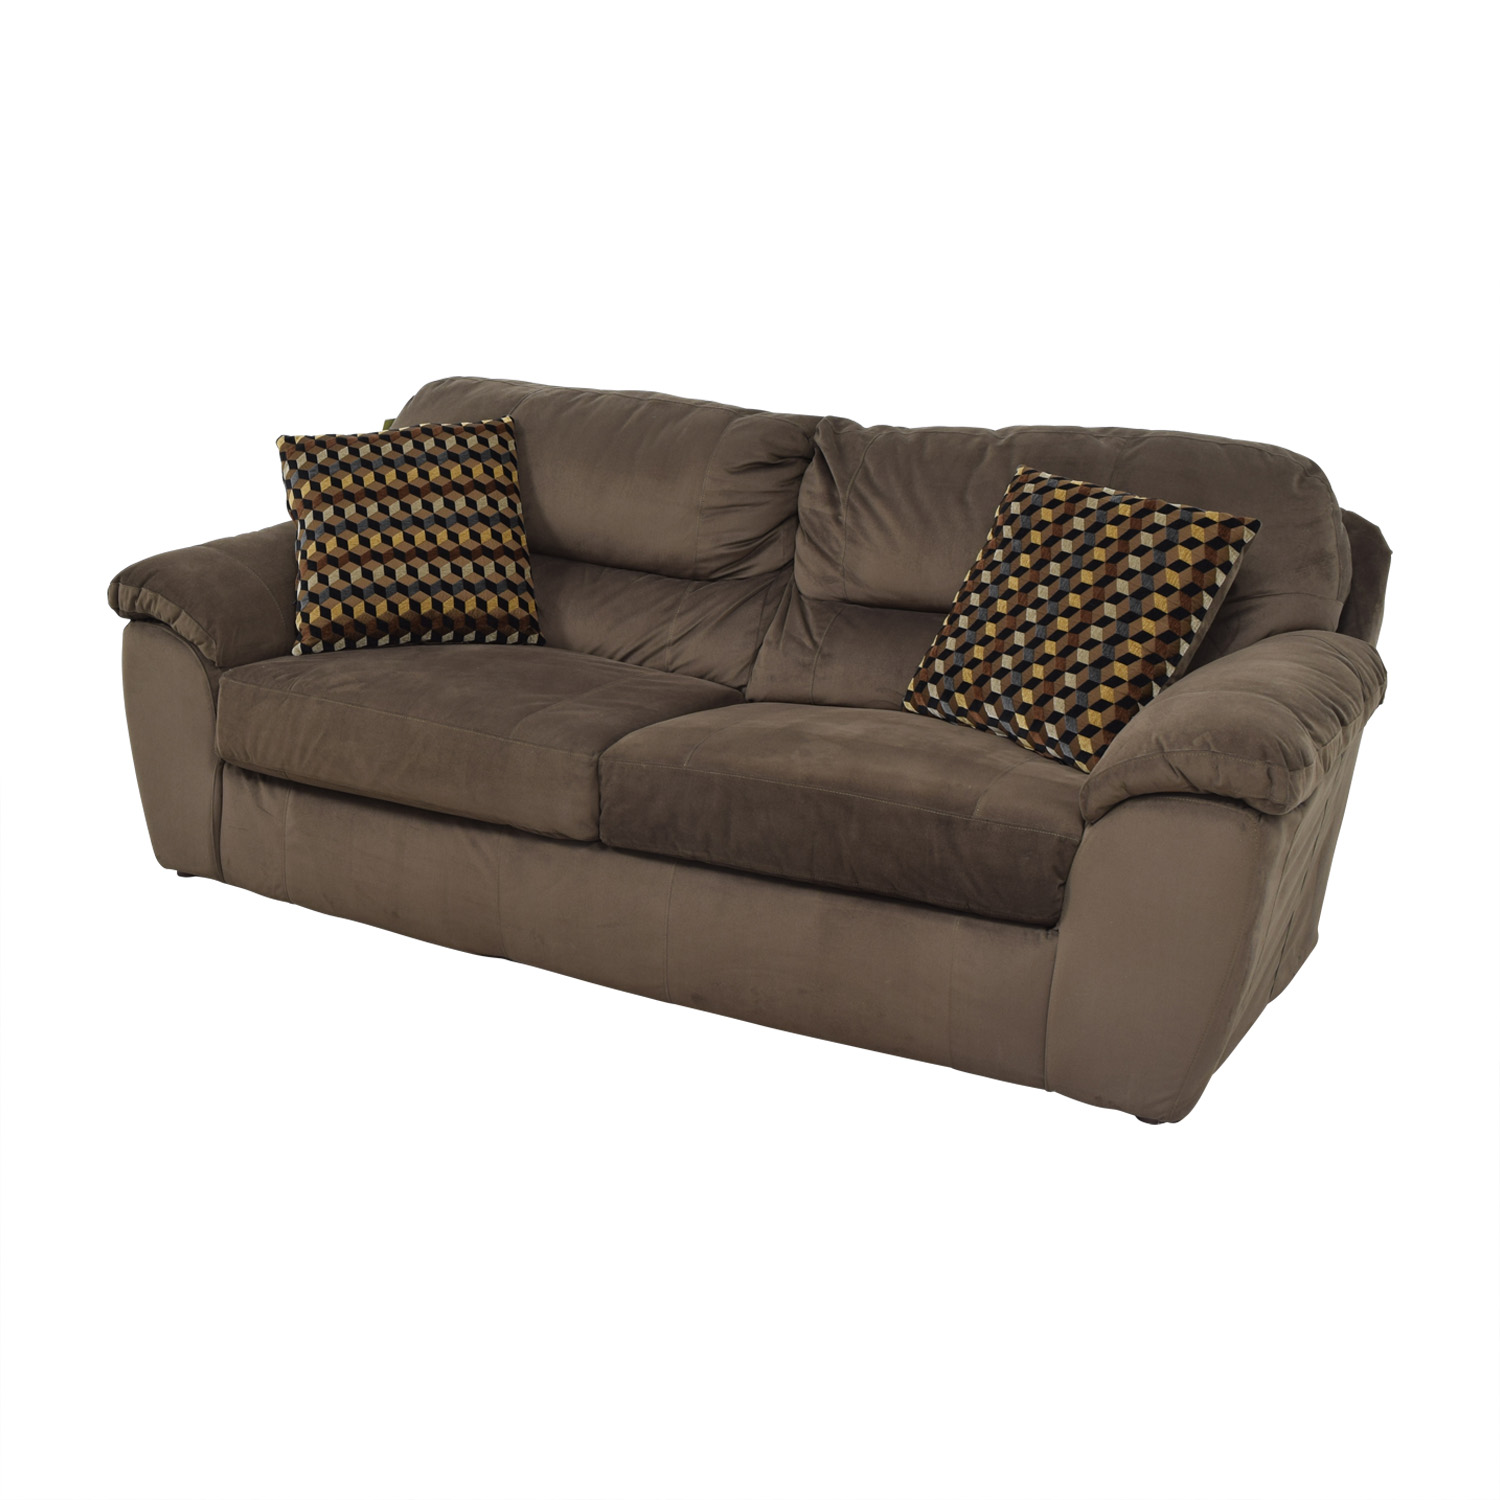 Bobs Furniture Bobs Furniture Brown Bailey Two-Cushion Sofa Sofas